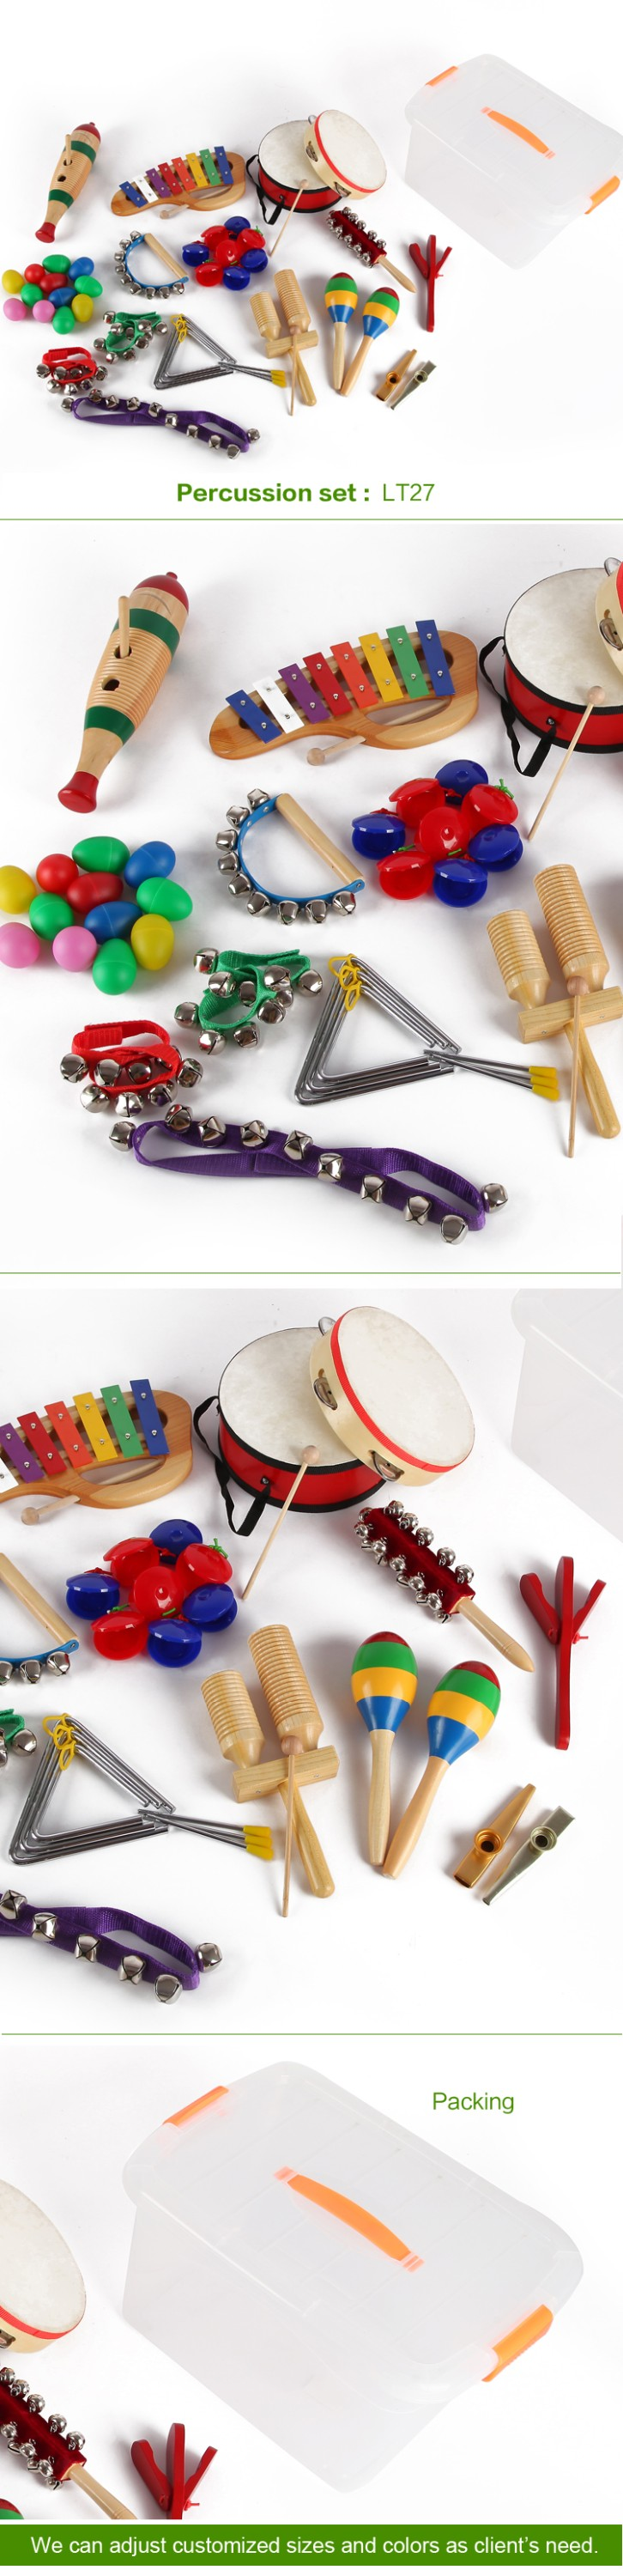 YH Kid Musical Instrument musical toy box sets percussion set